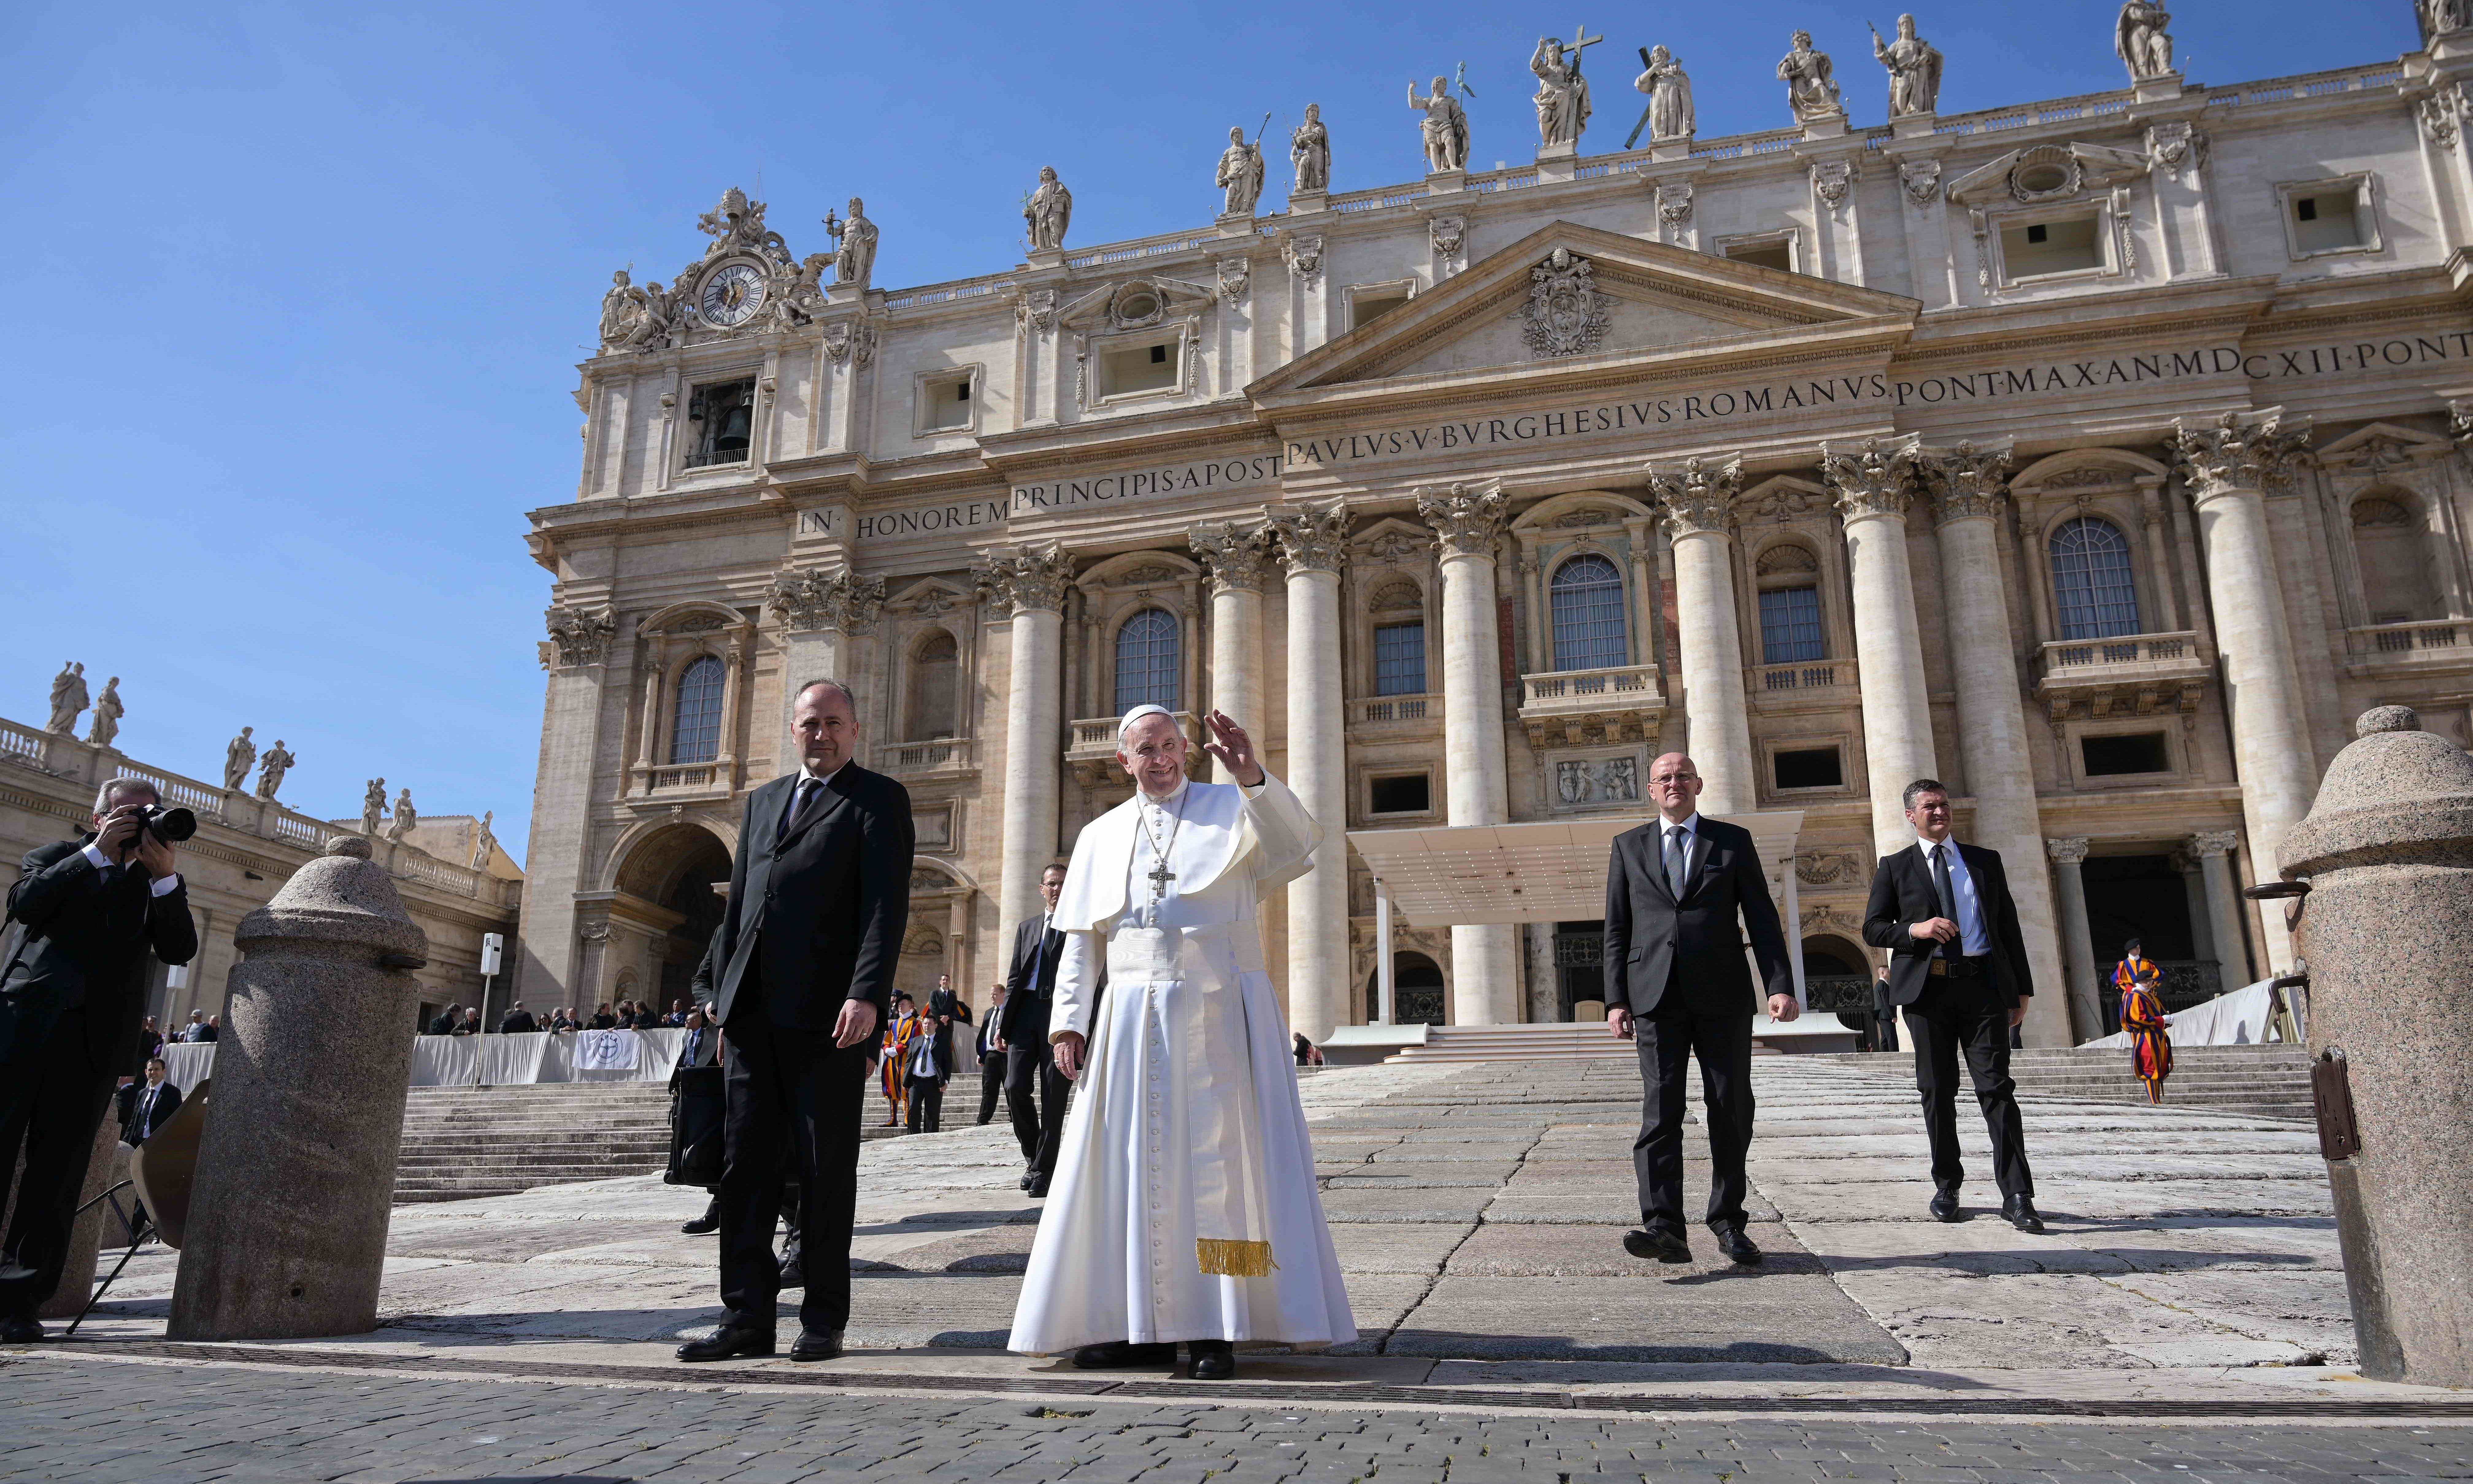 Female journalists quit in protest at Vatican 'climate of distrust'